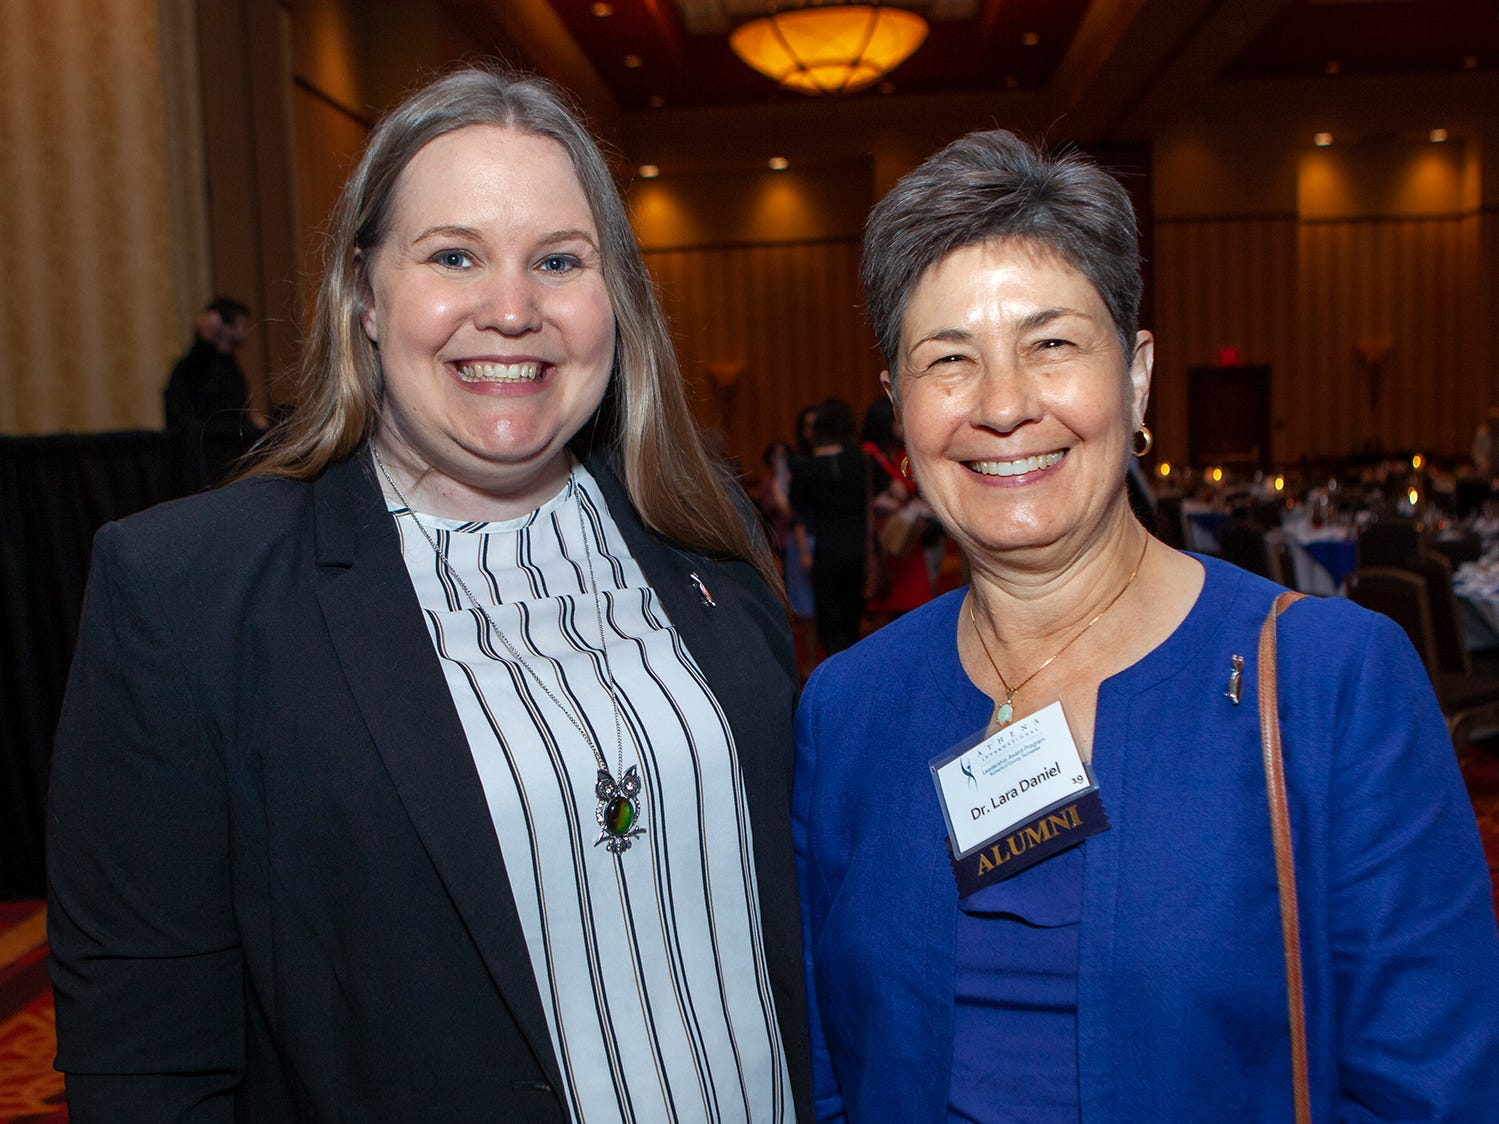 Kim Page and Lara Daniel at the  annual ATHENA Leadership Awards, hosted by Rutherford Cable Friday, April 12, 2019 at Embassy Suites Murfreesboro.